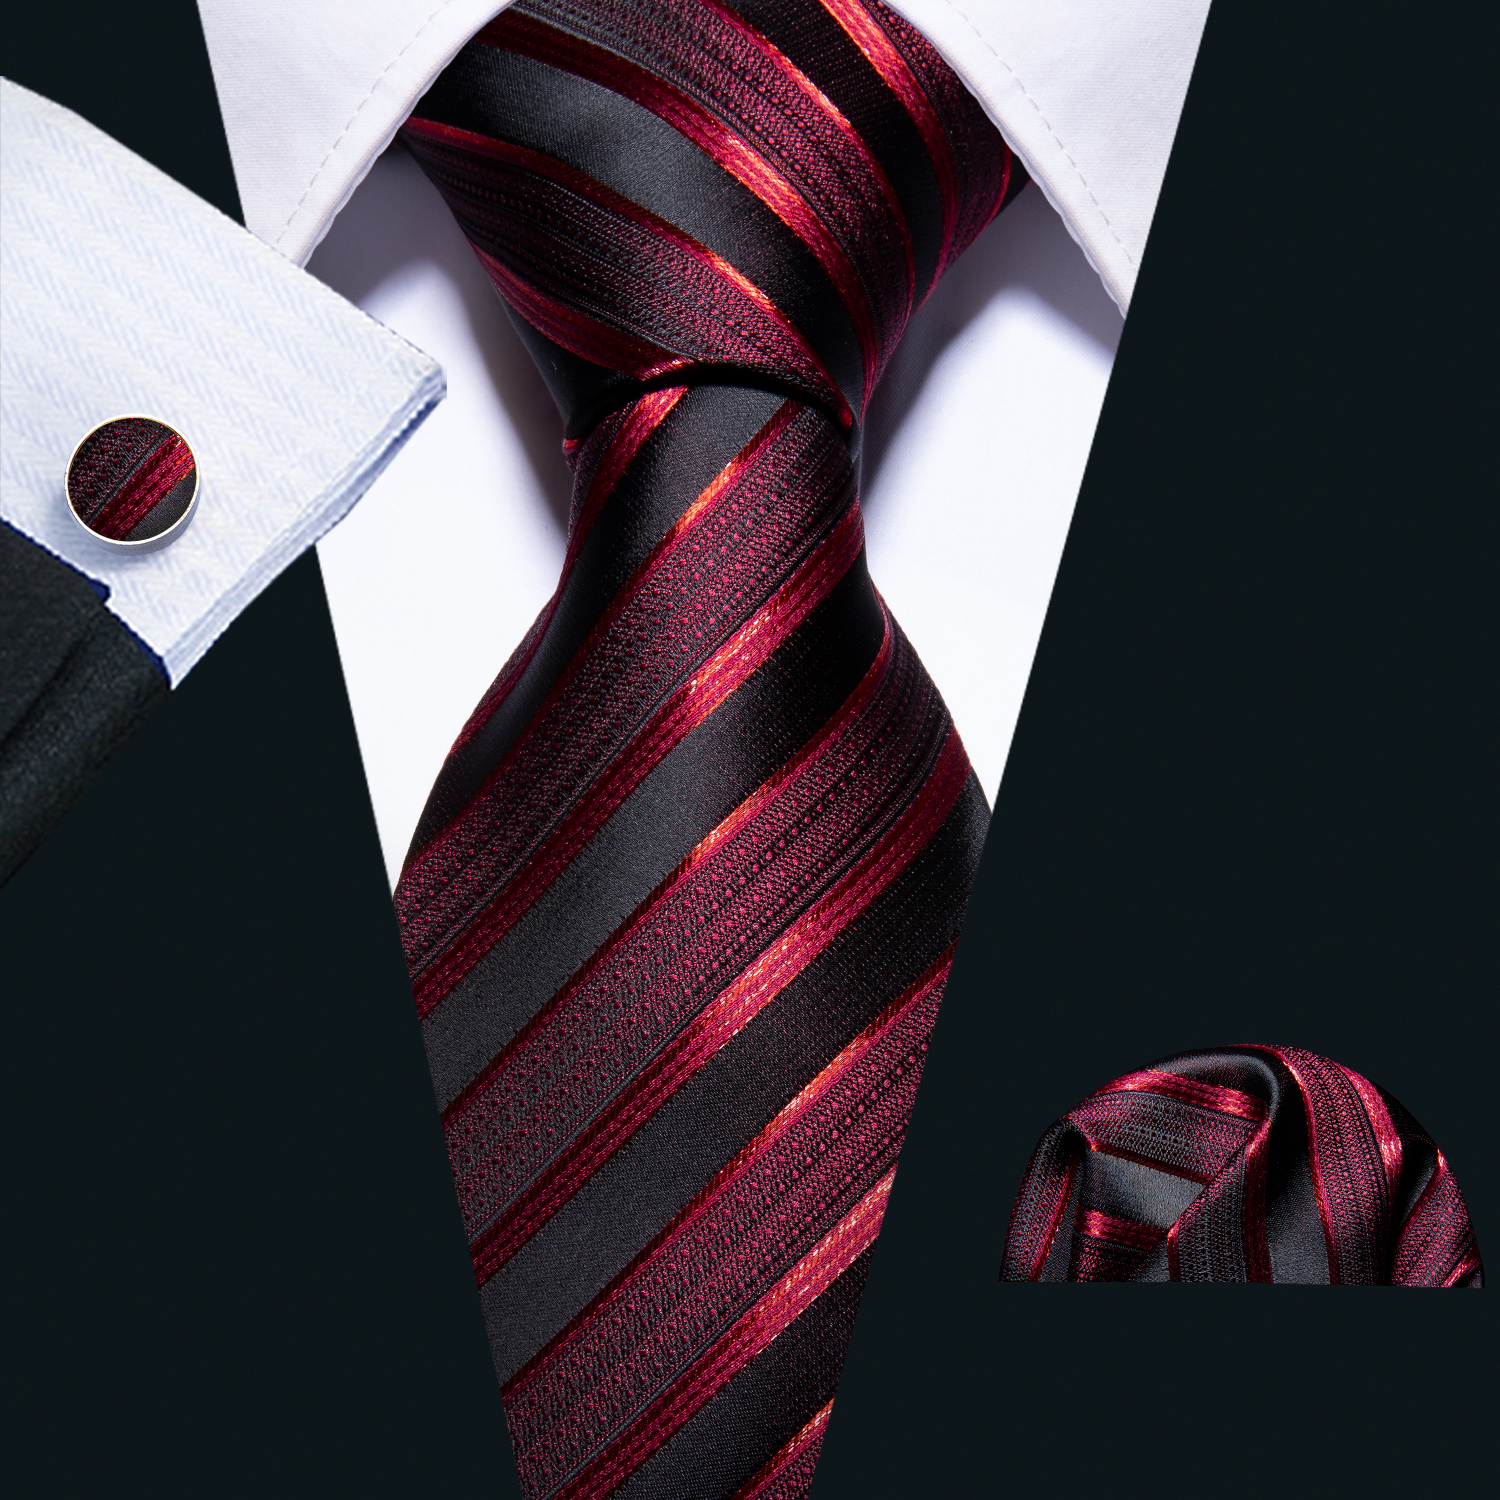 f085e61dcf03 2019 New Wedding Gift Men Tie Red Gold Paisley Striped Fashion Ties For Men  Business Dropshiping